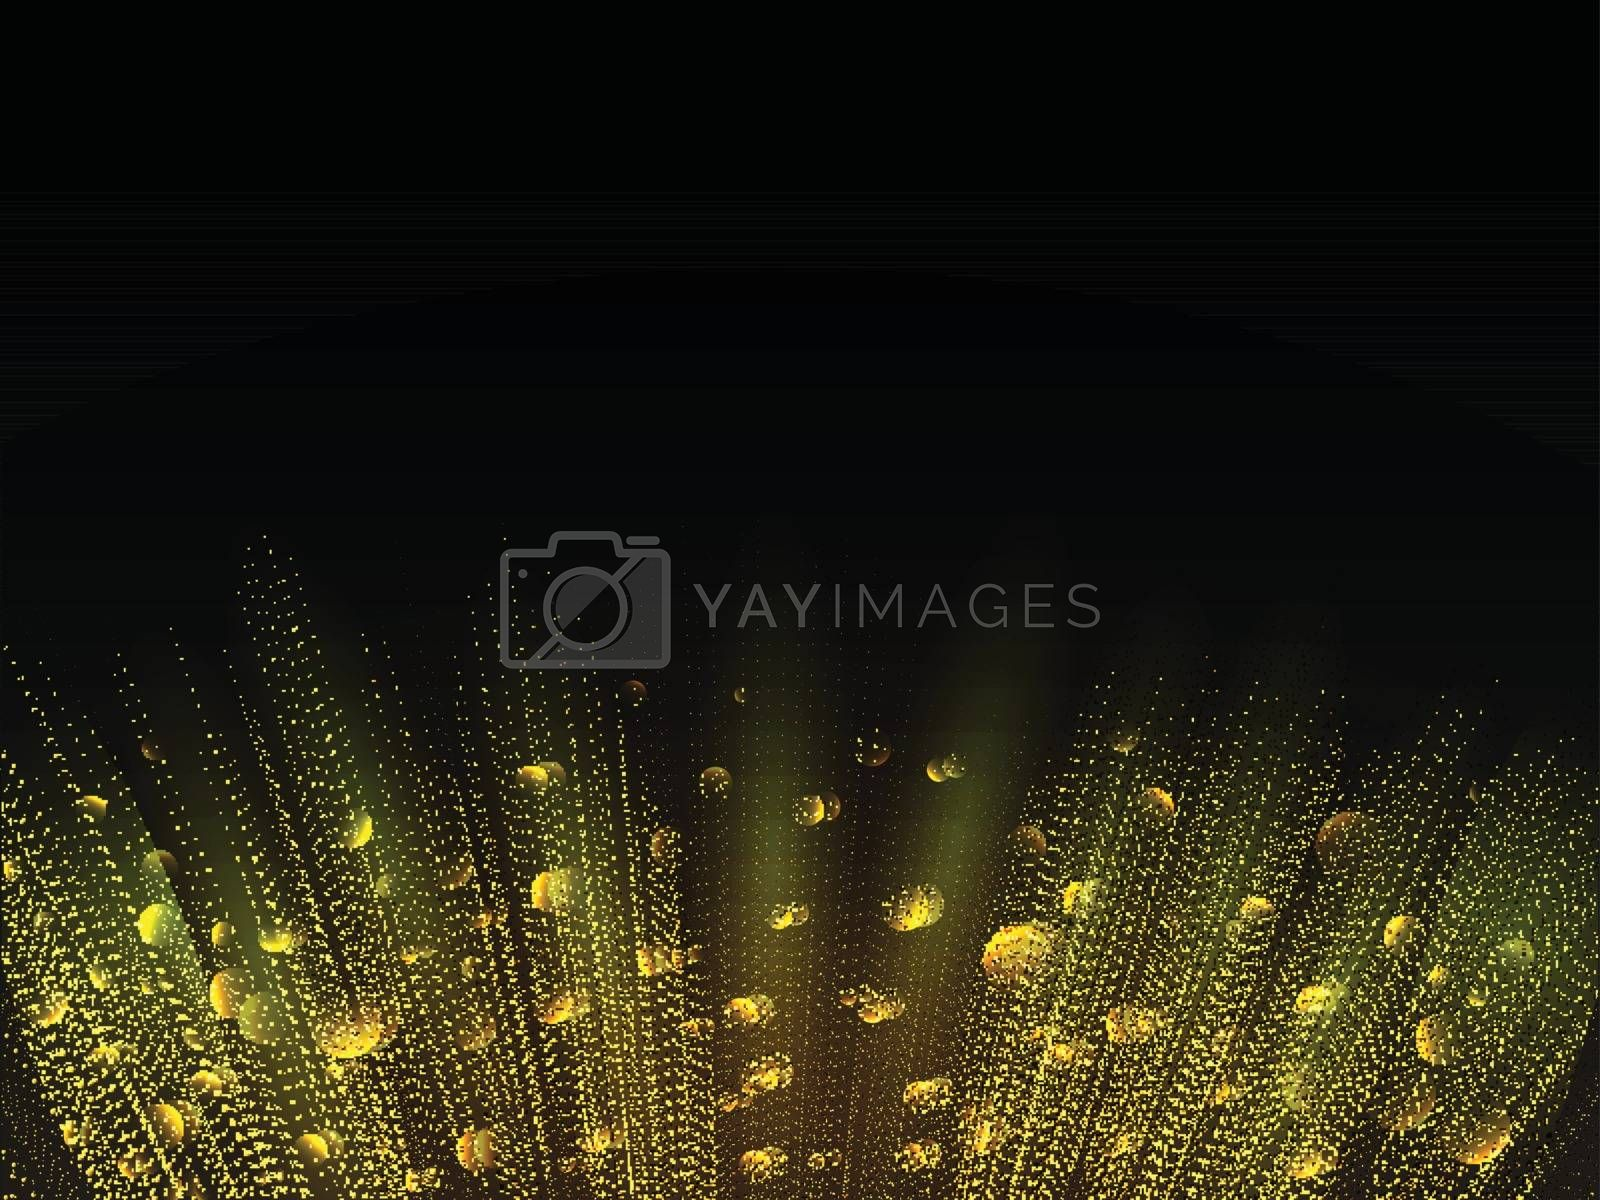 Glowing abstract background with golden particles and rays effect.